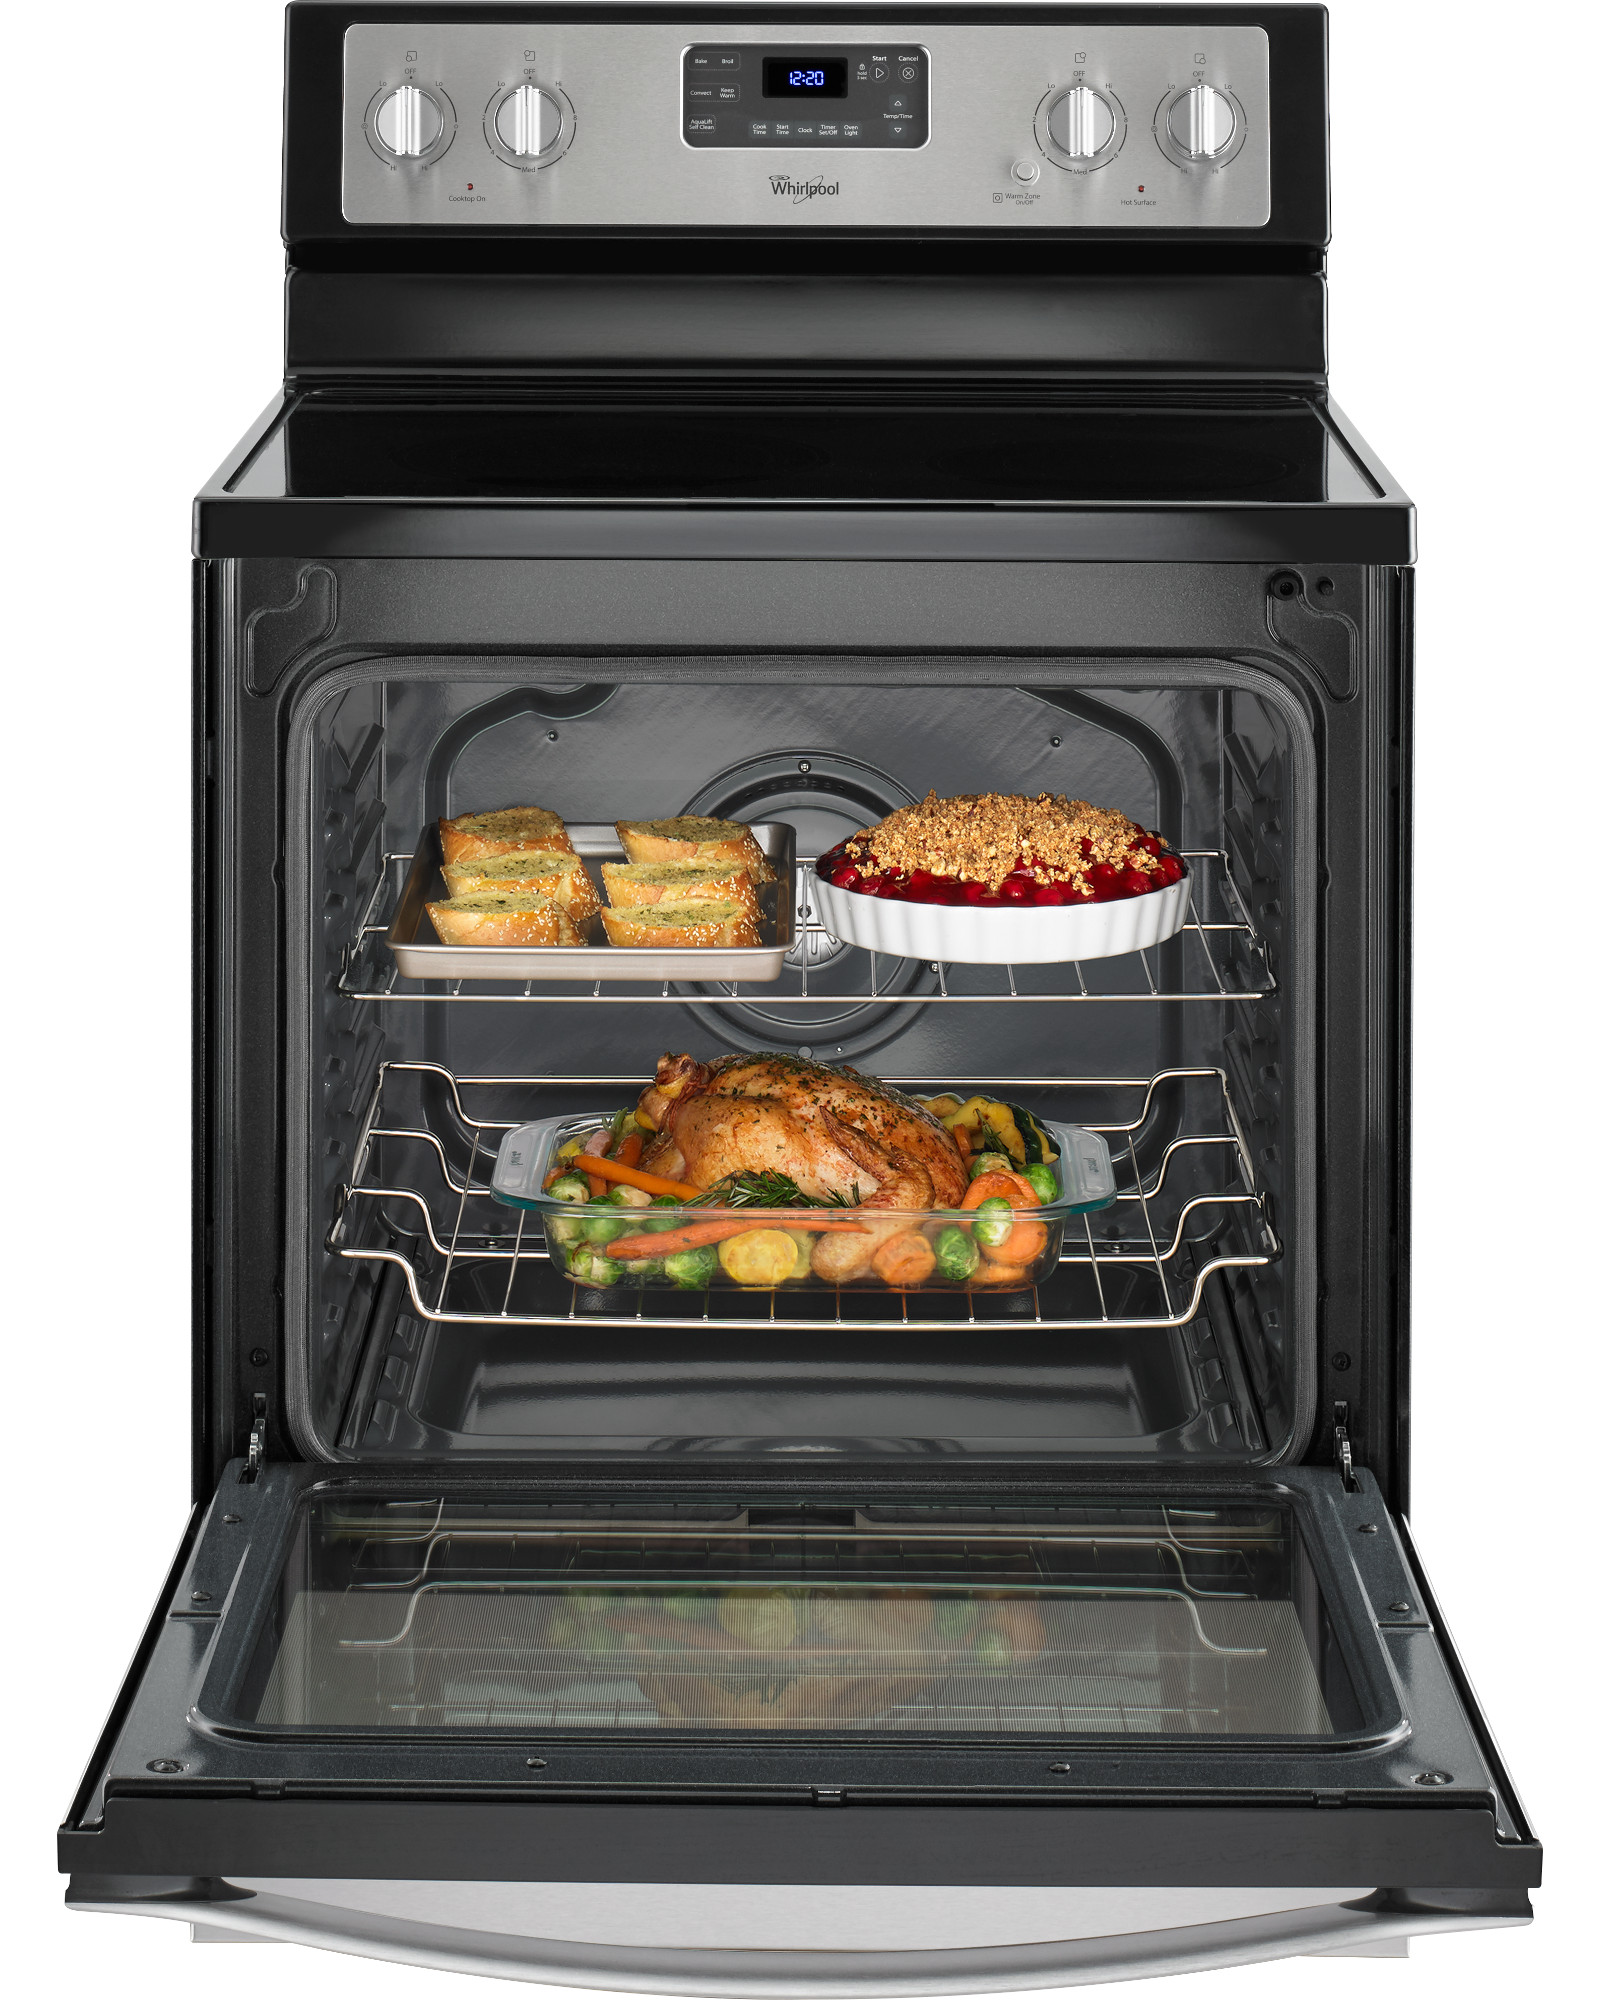 Whirlpool 6.4 cu. ft. Freestanding Electric Range - Stainless Steel